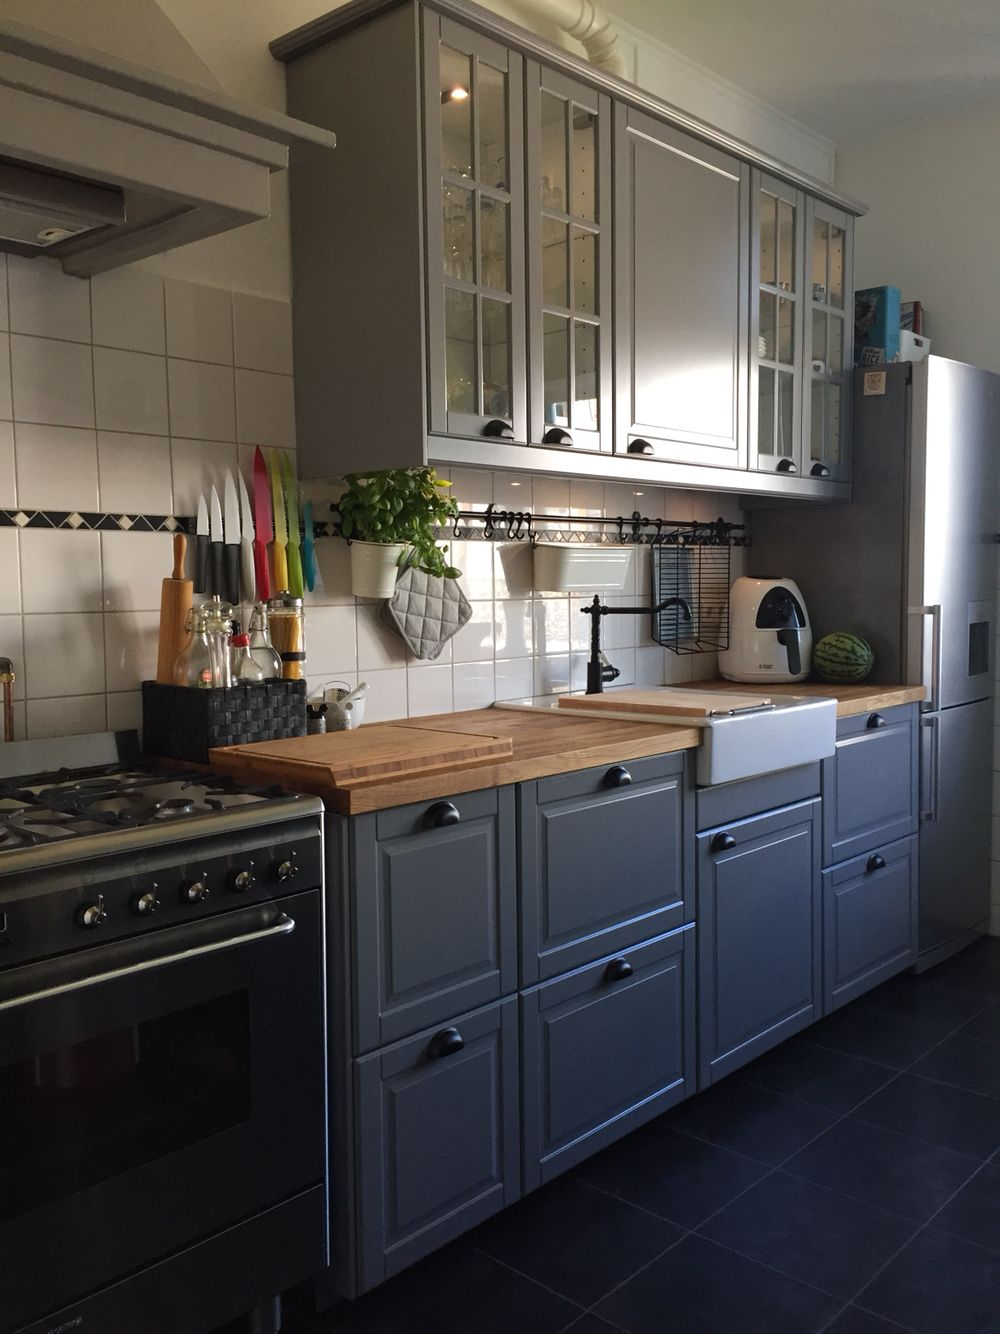 New kitchen Ikea bodbyn grey | Home Decor | Pinterest | Küche ...